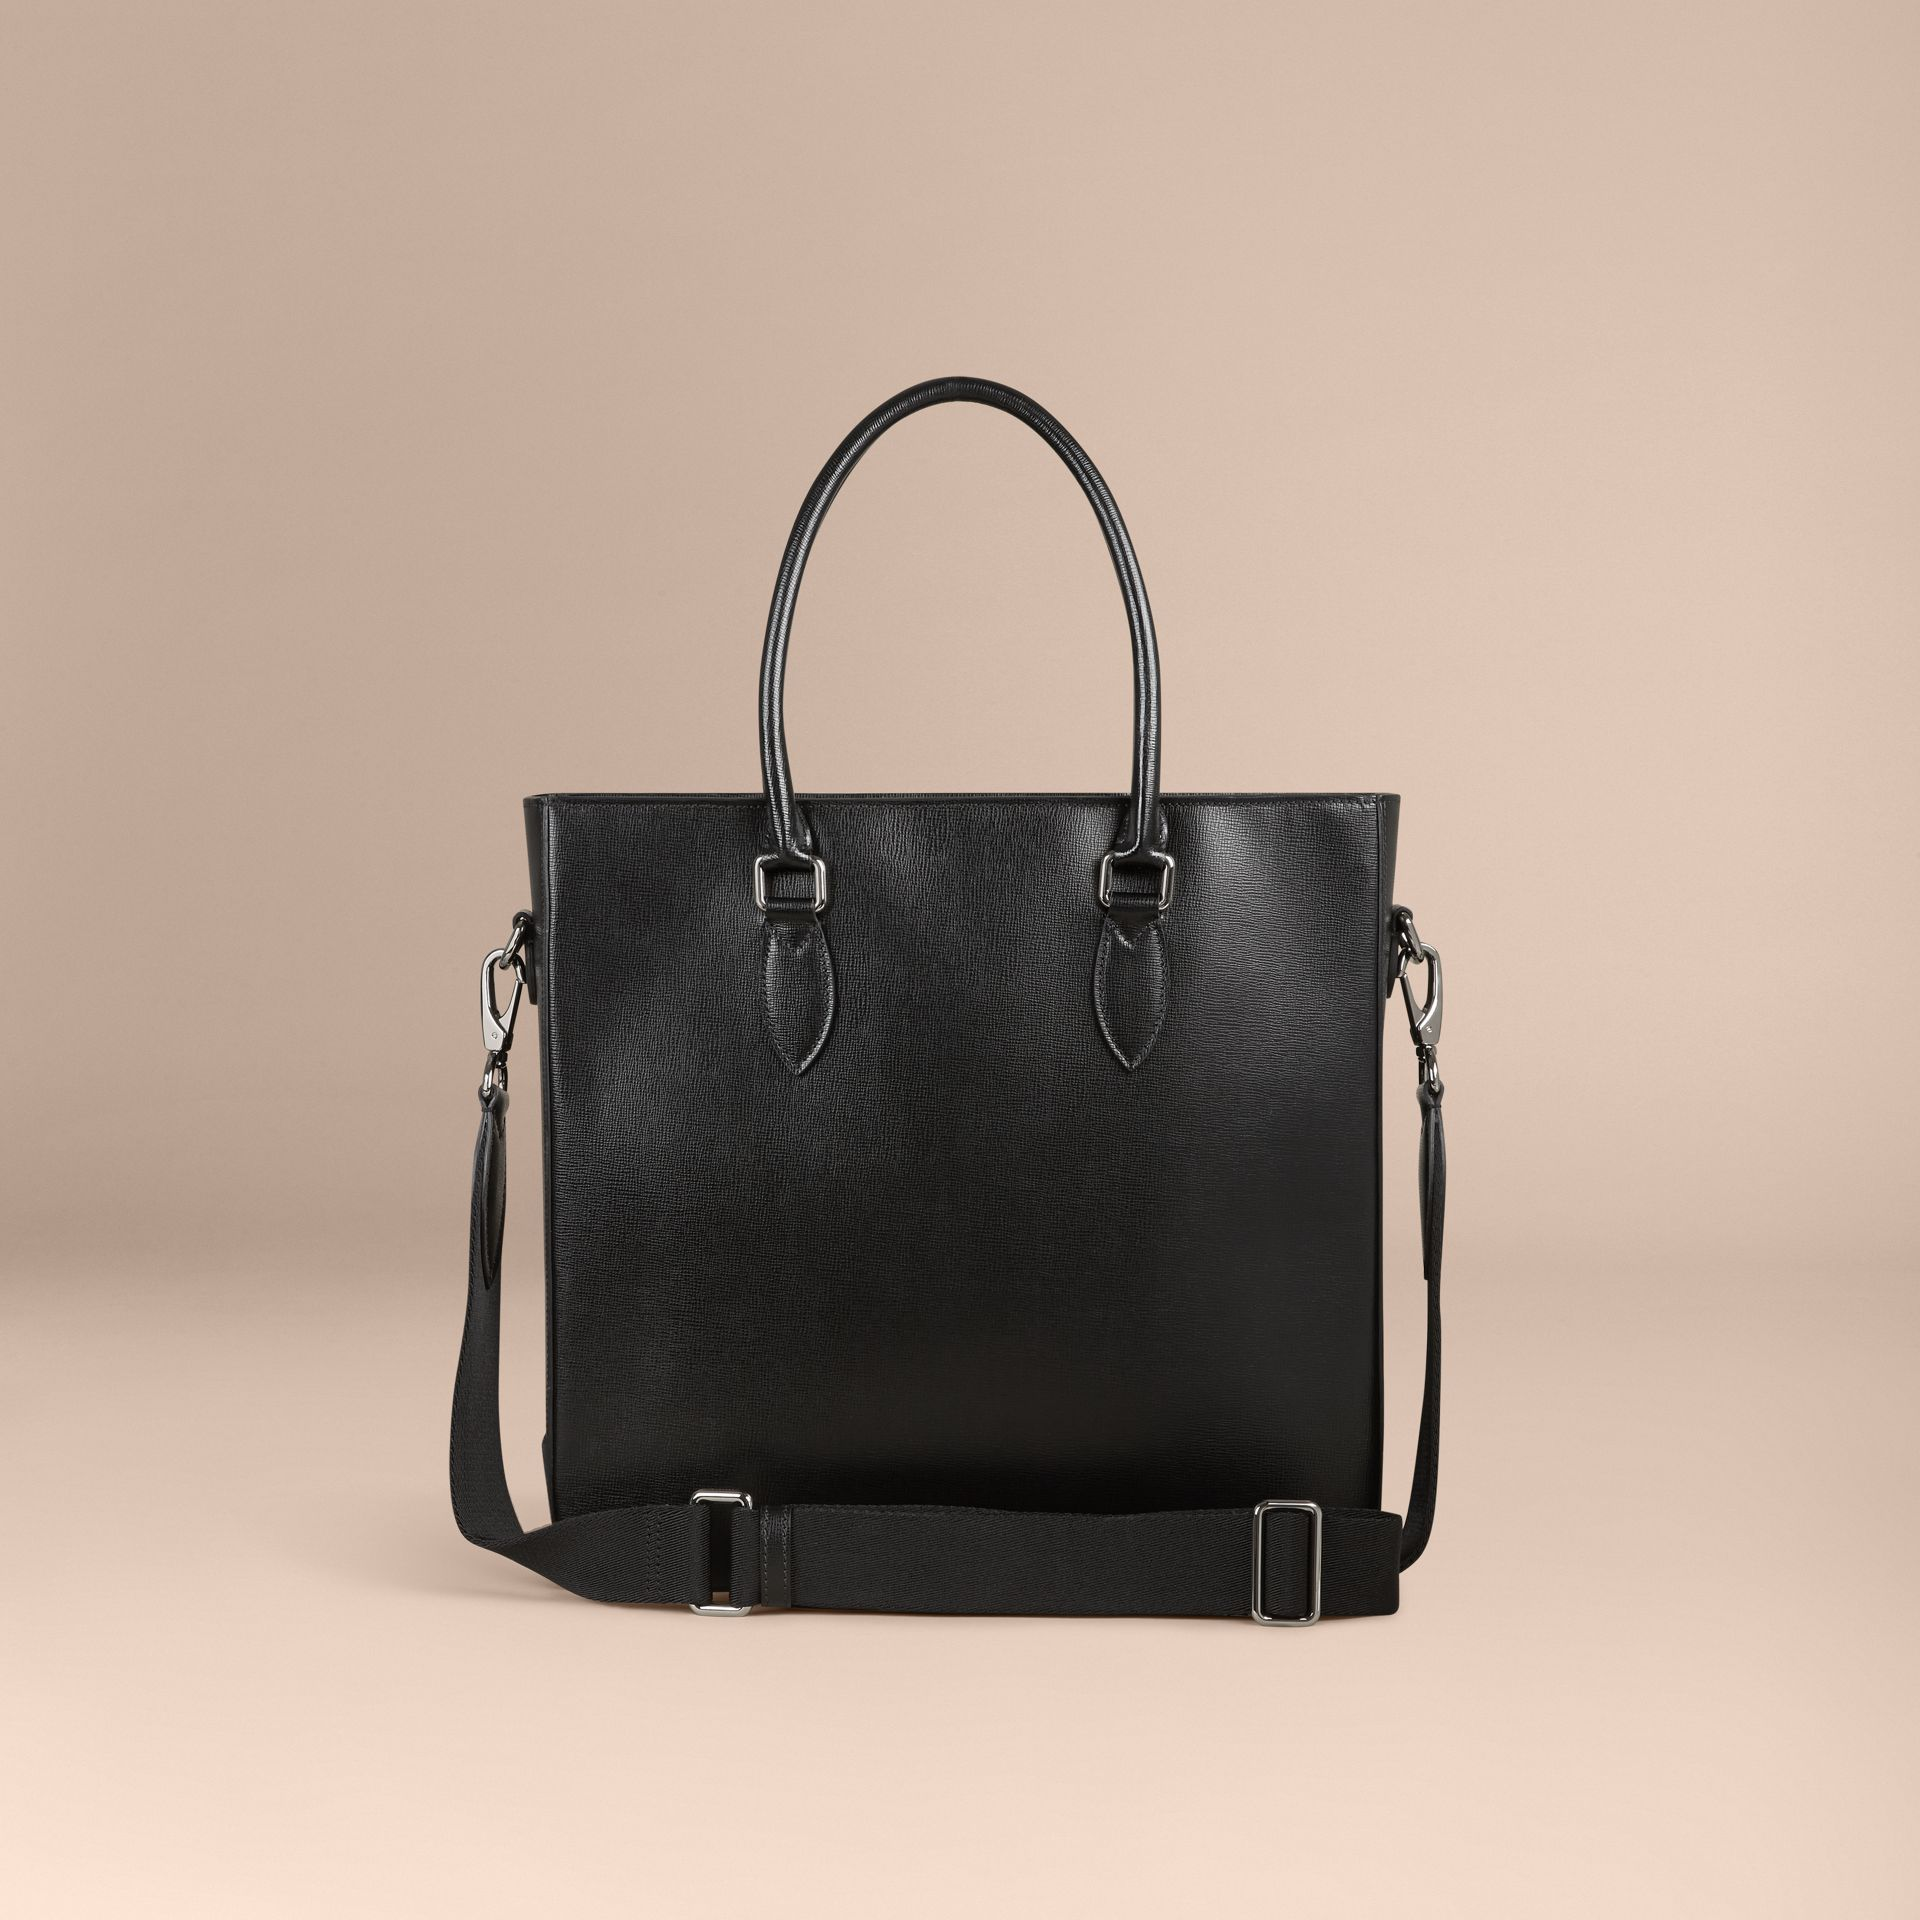 London Leather Tote Bag in Black - gallery image 5